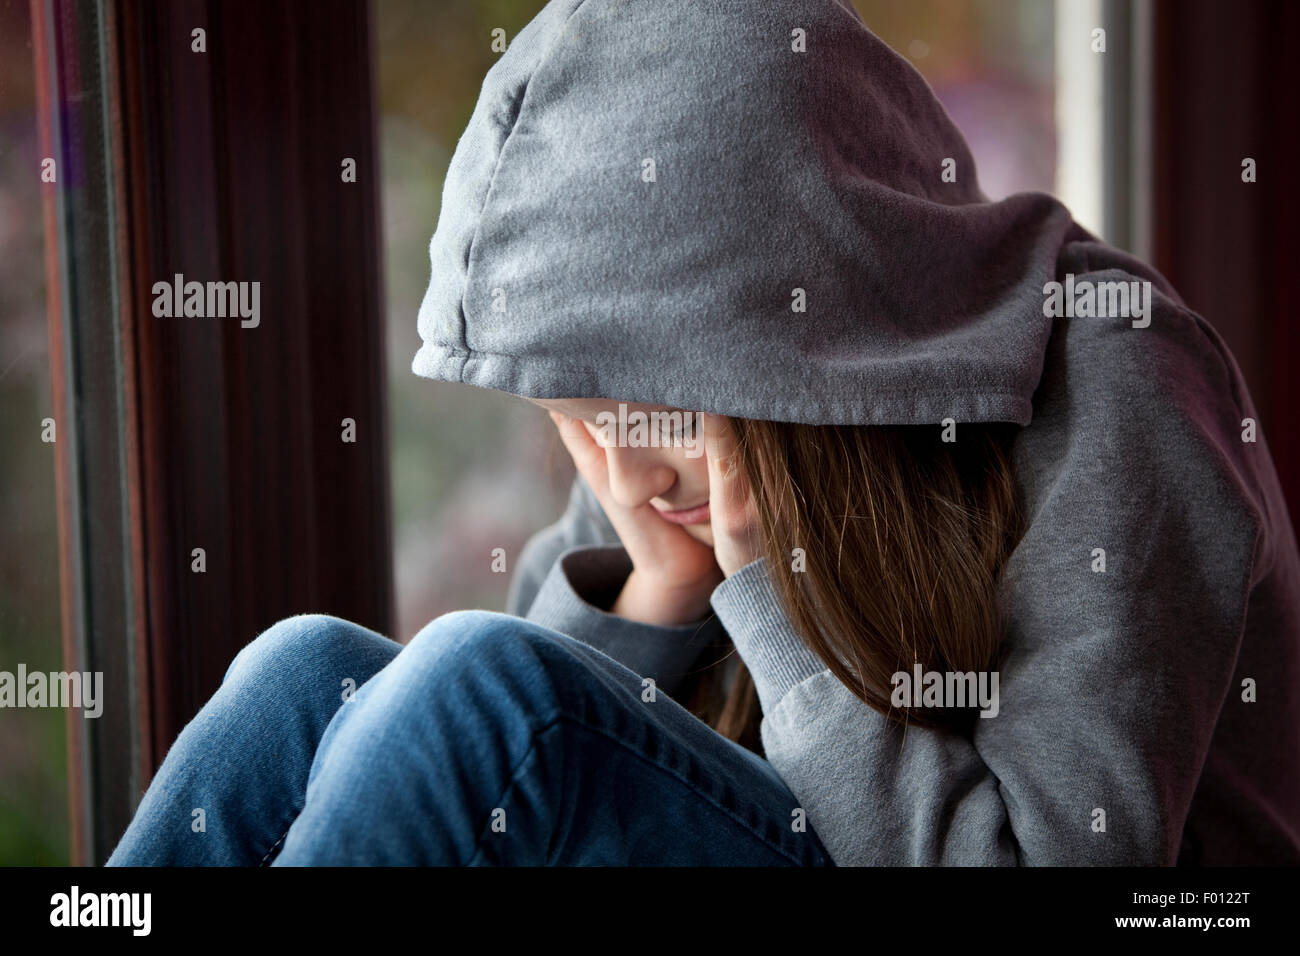 Sad girl in hooded top, sitting with head in hands in despair - Stock Image